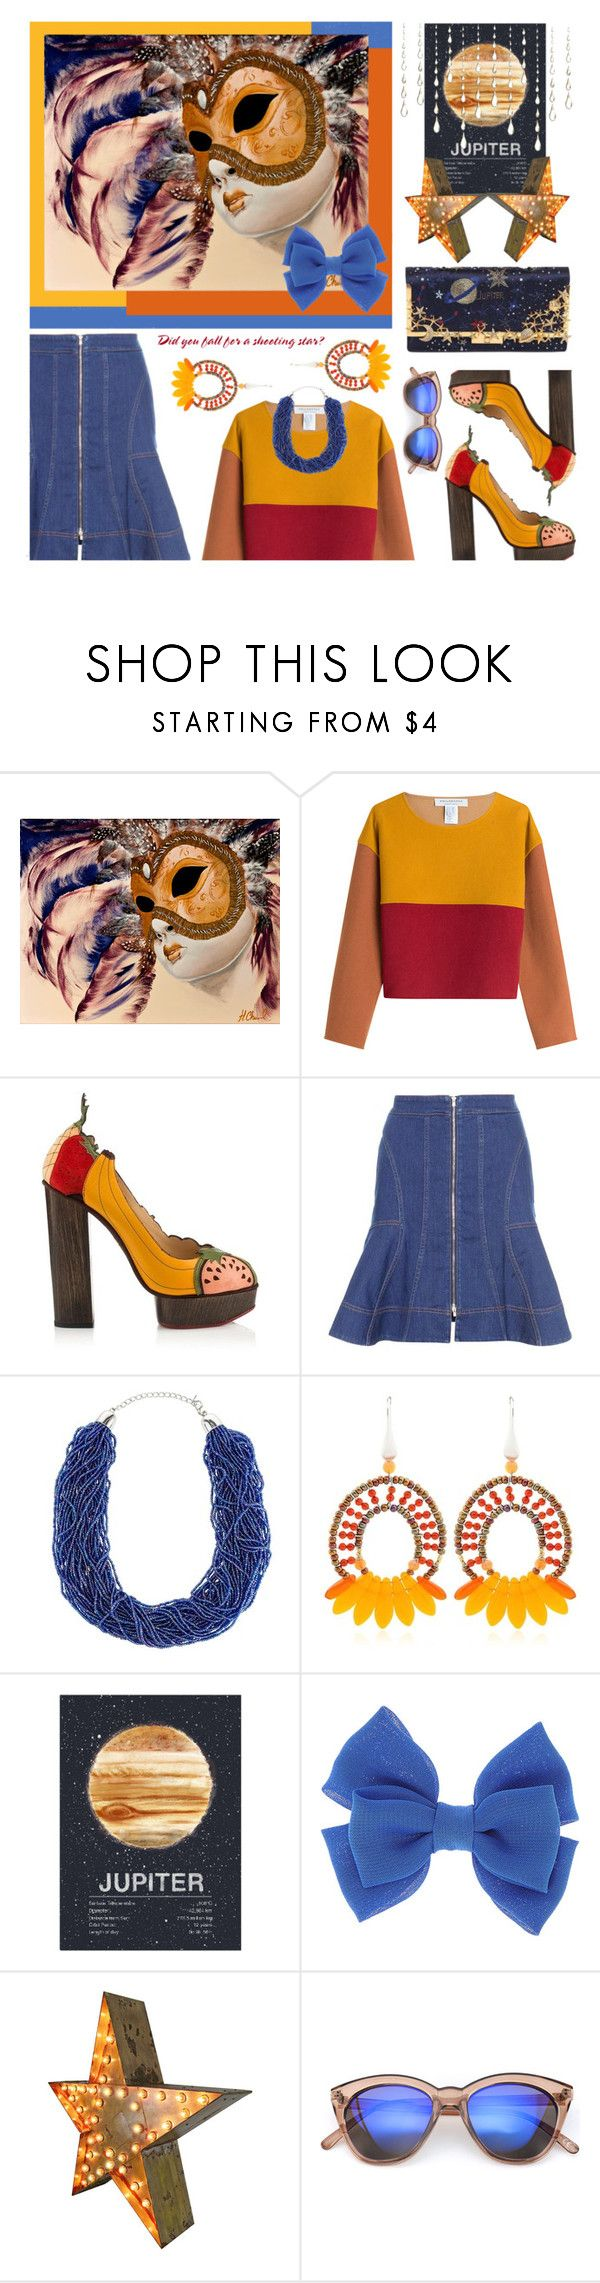 """She's Back In The Atmosphere - With Drops Of Jupiter In Her Hair"" by sharee64 ❤ liked on Polyvore featuring Philosophy di Lorenzo Serafini, STELLA McCARTNEY, John Lewis and Ziio"